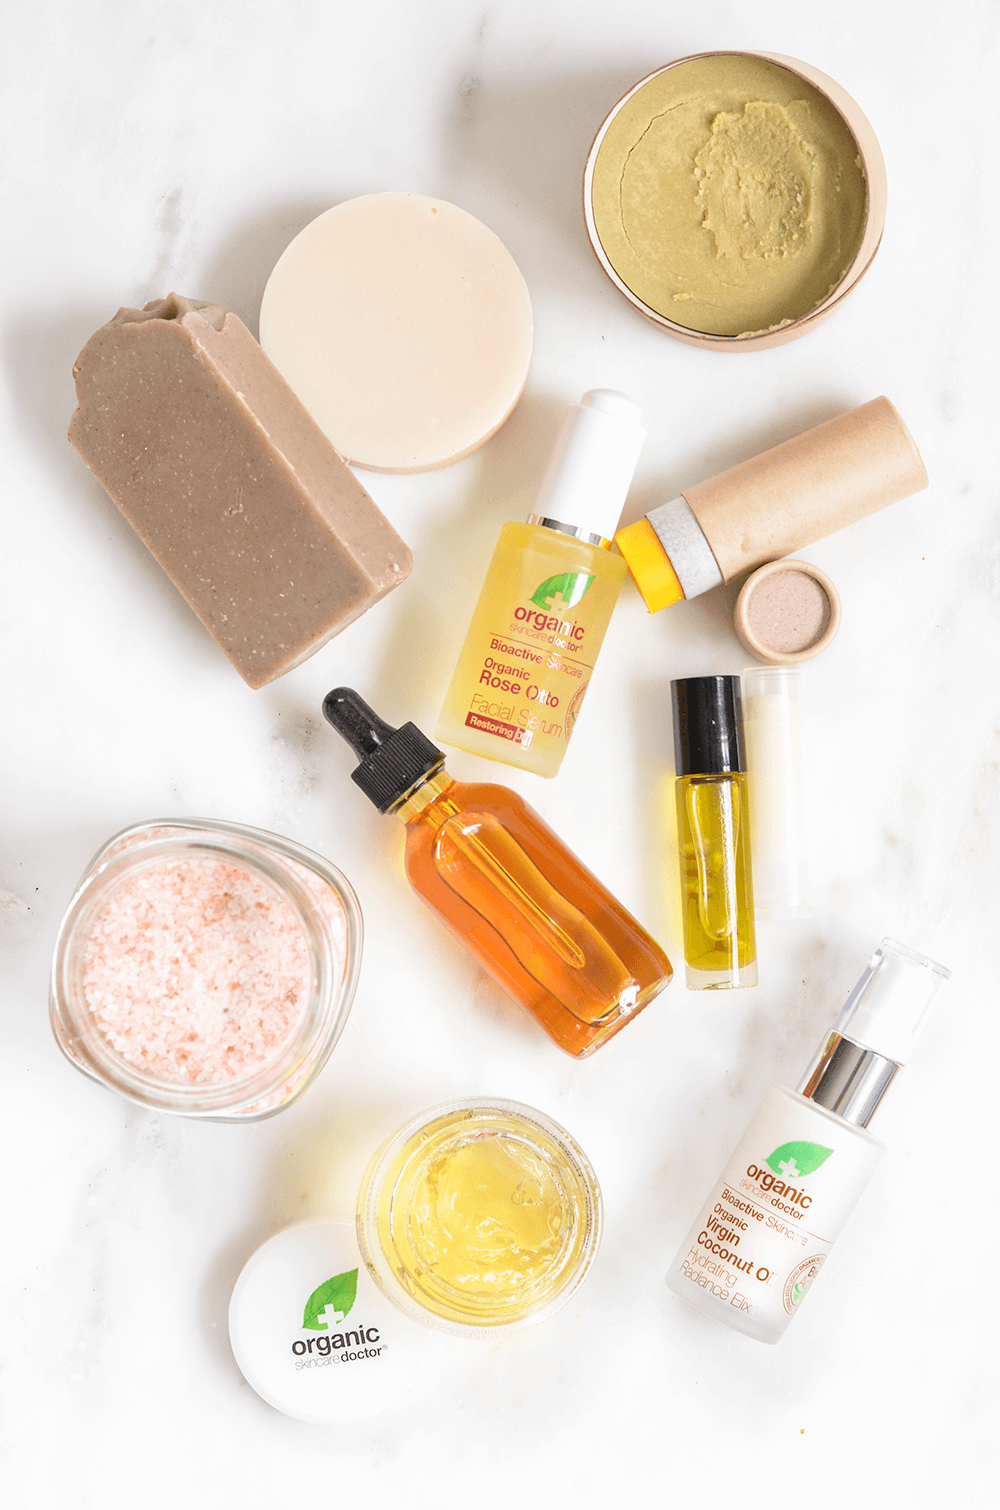 Everyday Beauty Essentials | My top picks for daily skin care. Sponsored by Organic Doctor